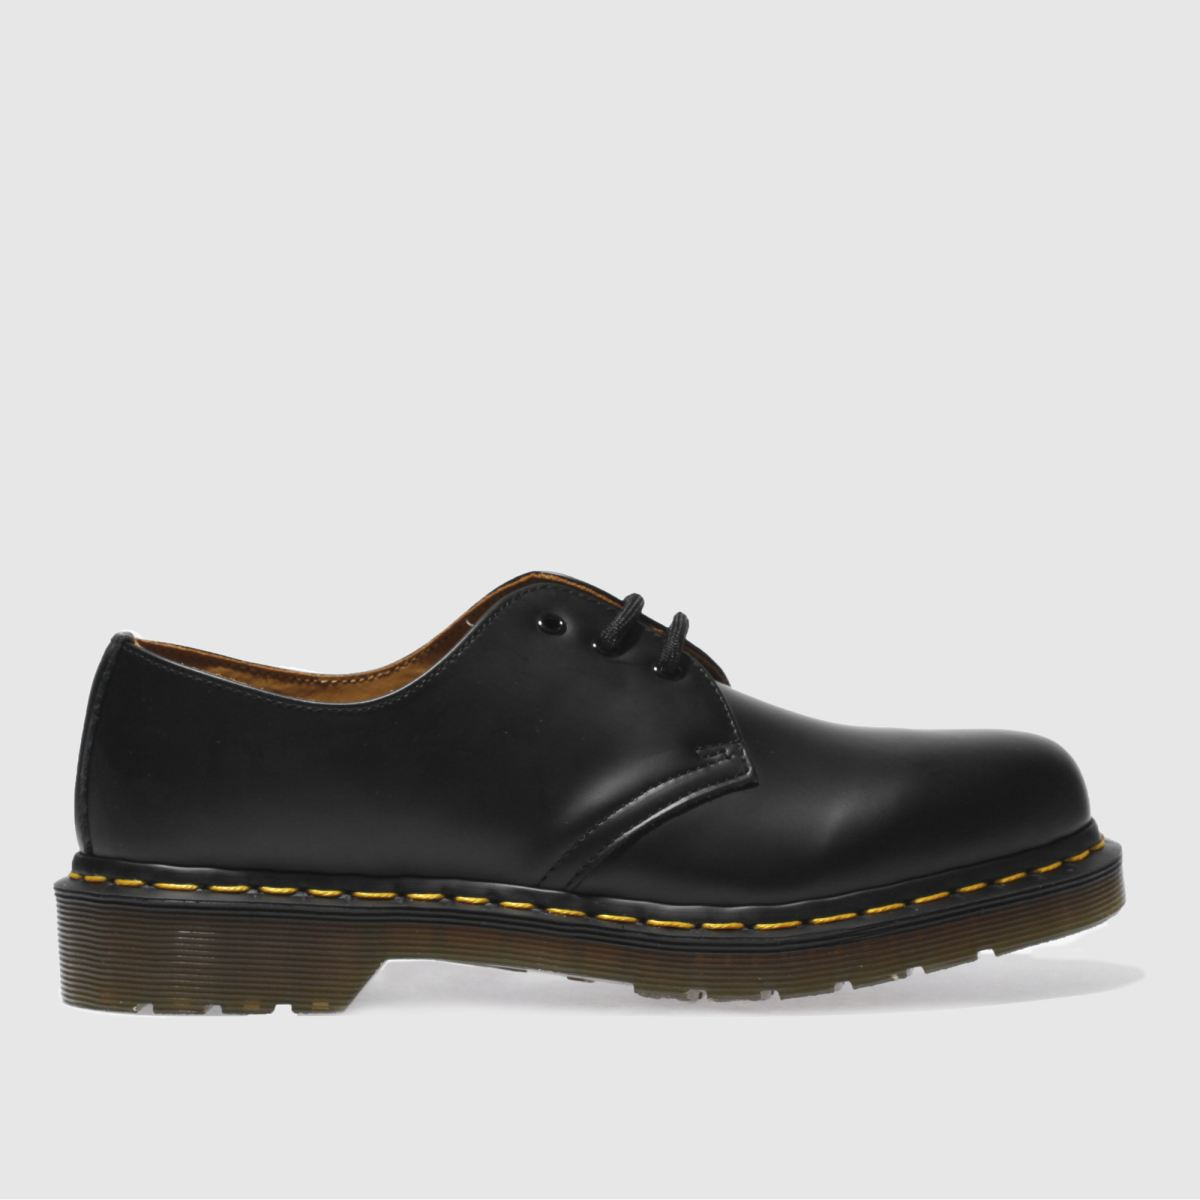 Dr Martens Womens Shoes